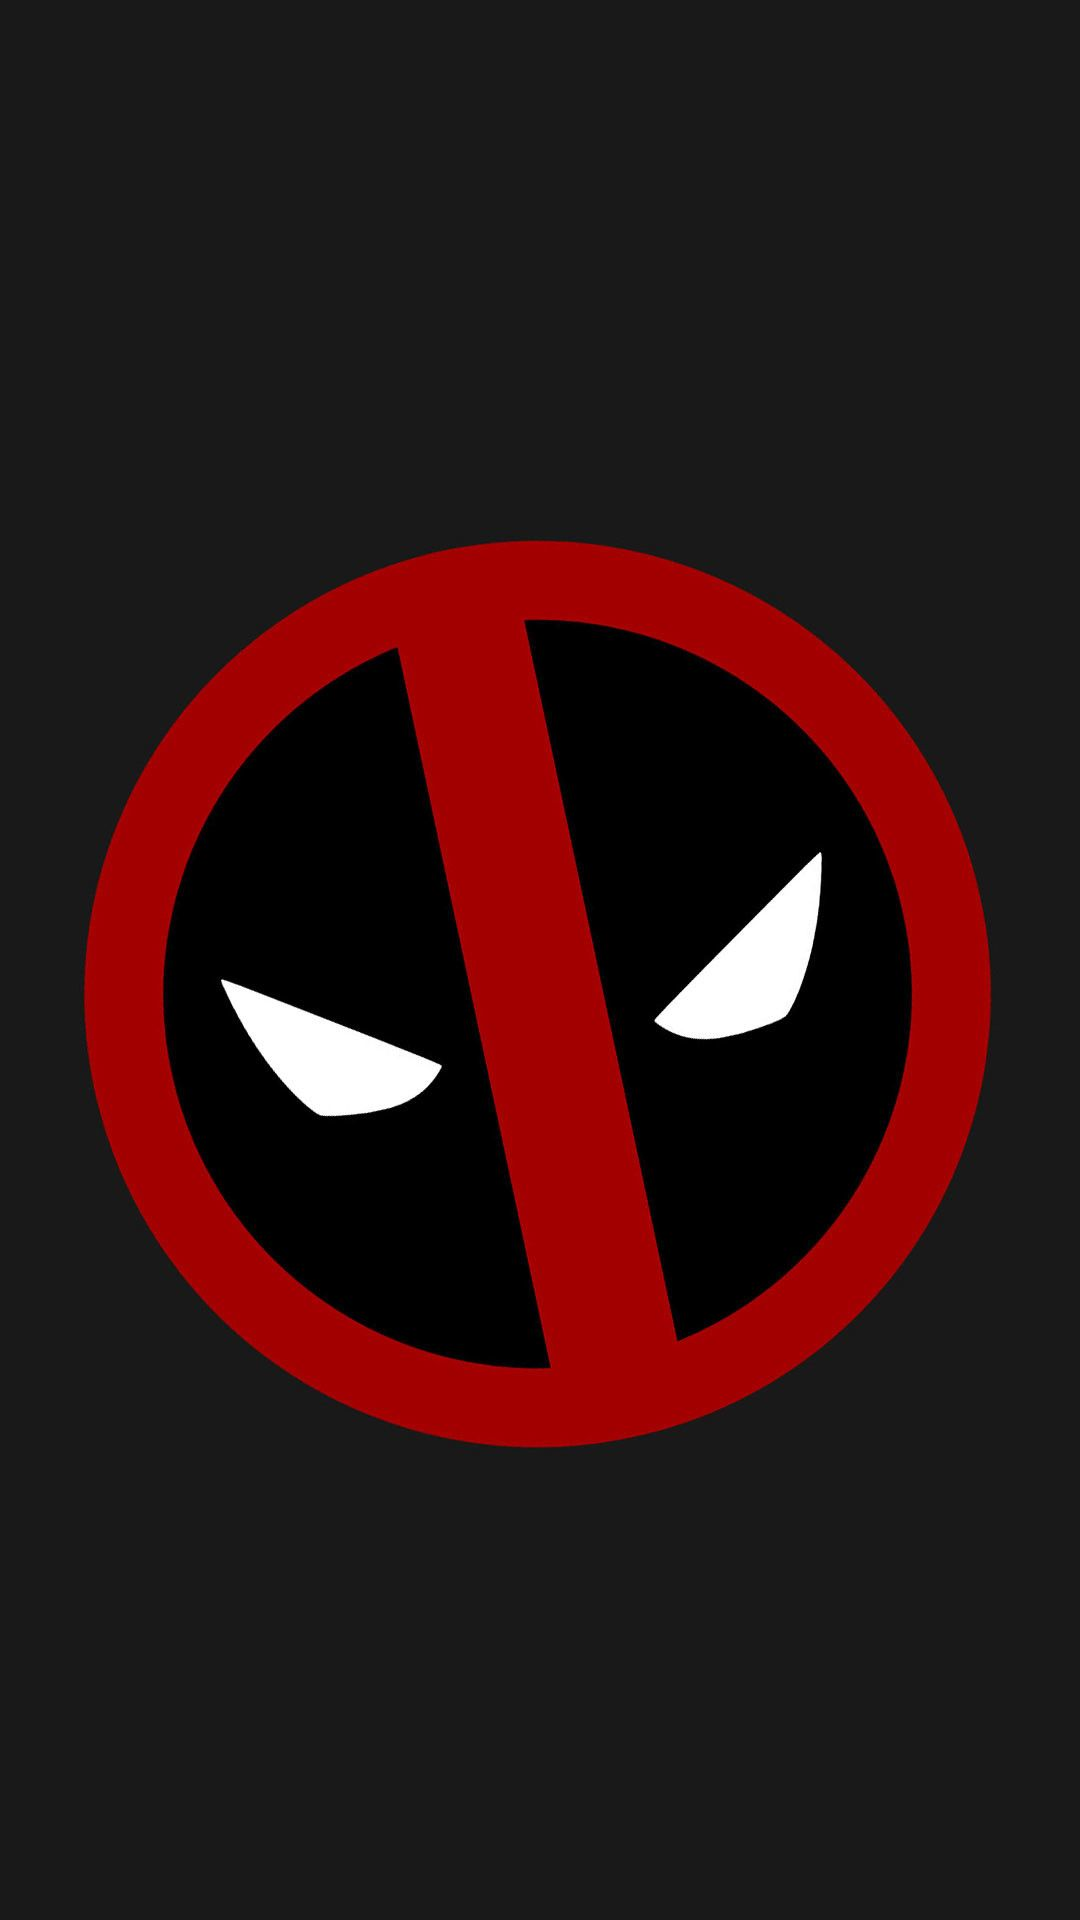 Deadpool Logo wallpapers images.